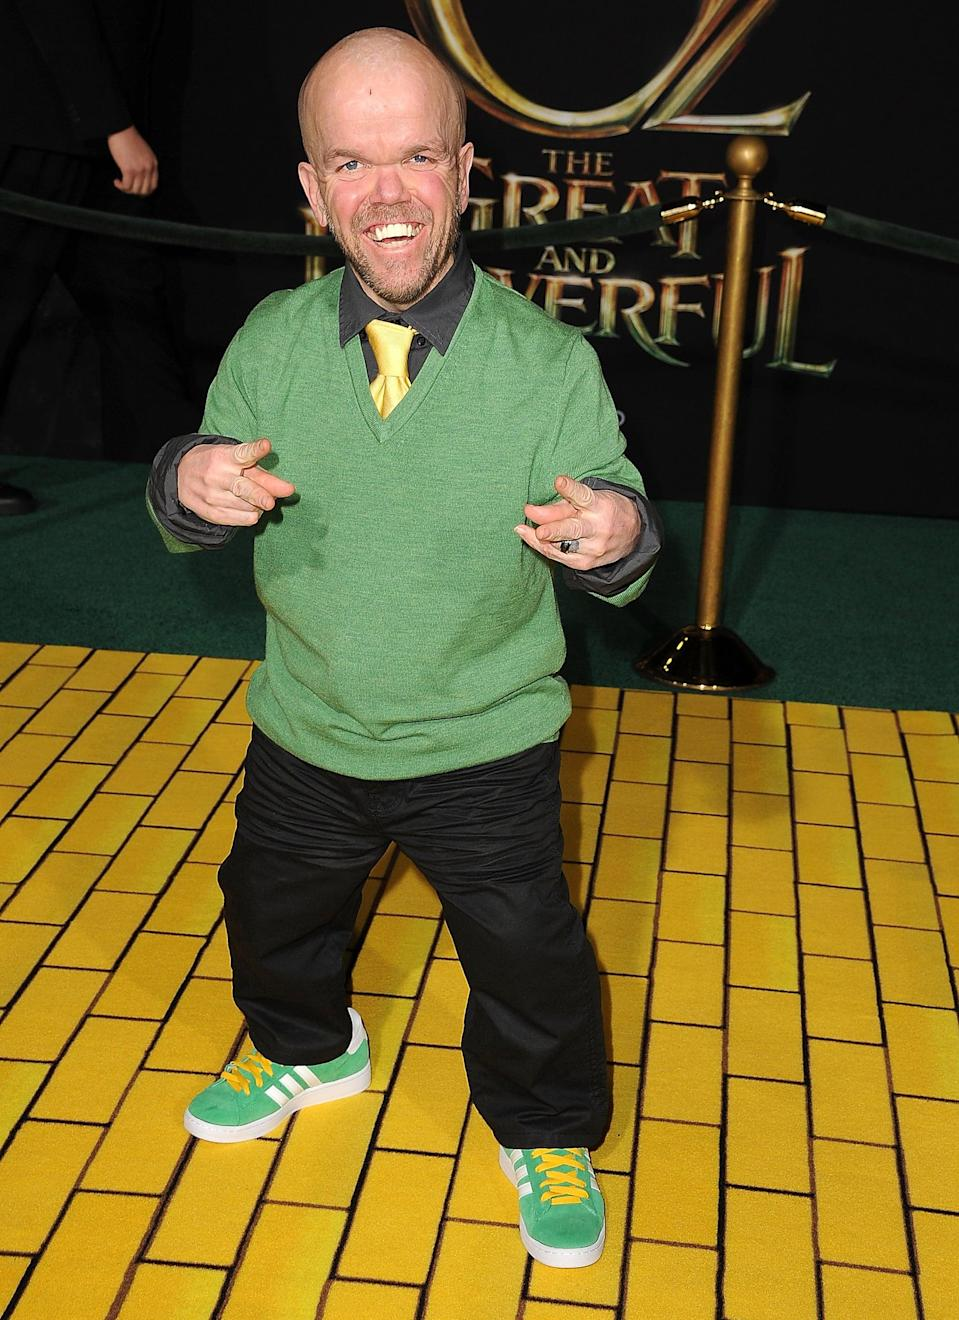 """<p>The <a href=""""https://www.hollywoodreporter.com/news/stevie-lee-jackass-3d-and-american-horror-story-star-dies-at-54"""" class=""""link rapid-noclick-resp"""" rel=""""nofollow noopener"""" target=""""_blank"""" data-ylk=""""slk:actor and wrestler died at age 54"""">actor and wrestler died at age 54</a> on Sept. 9. His passing was <a href=""""https://www.gofundme.com/f/24u9hatqyo"""" class=""""link rapid-noclick-resp"""" rel=""""nofollow noopener"""" target=""""_blank"""" data-ylk=""""slk:announced in a GoFundMe fundraiser"""">announced in a GoFundMe fundraiser</a> created to help cover burial costs. """"He was beloved by many, has many friends that were family, and a countless number of fans that adored him,"""" the fundraiser post read. """"Puppet has put smiles on people's faces across the world with his hardcore attitude and lifestyle.""""</p>"""